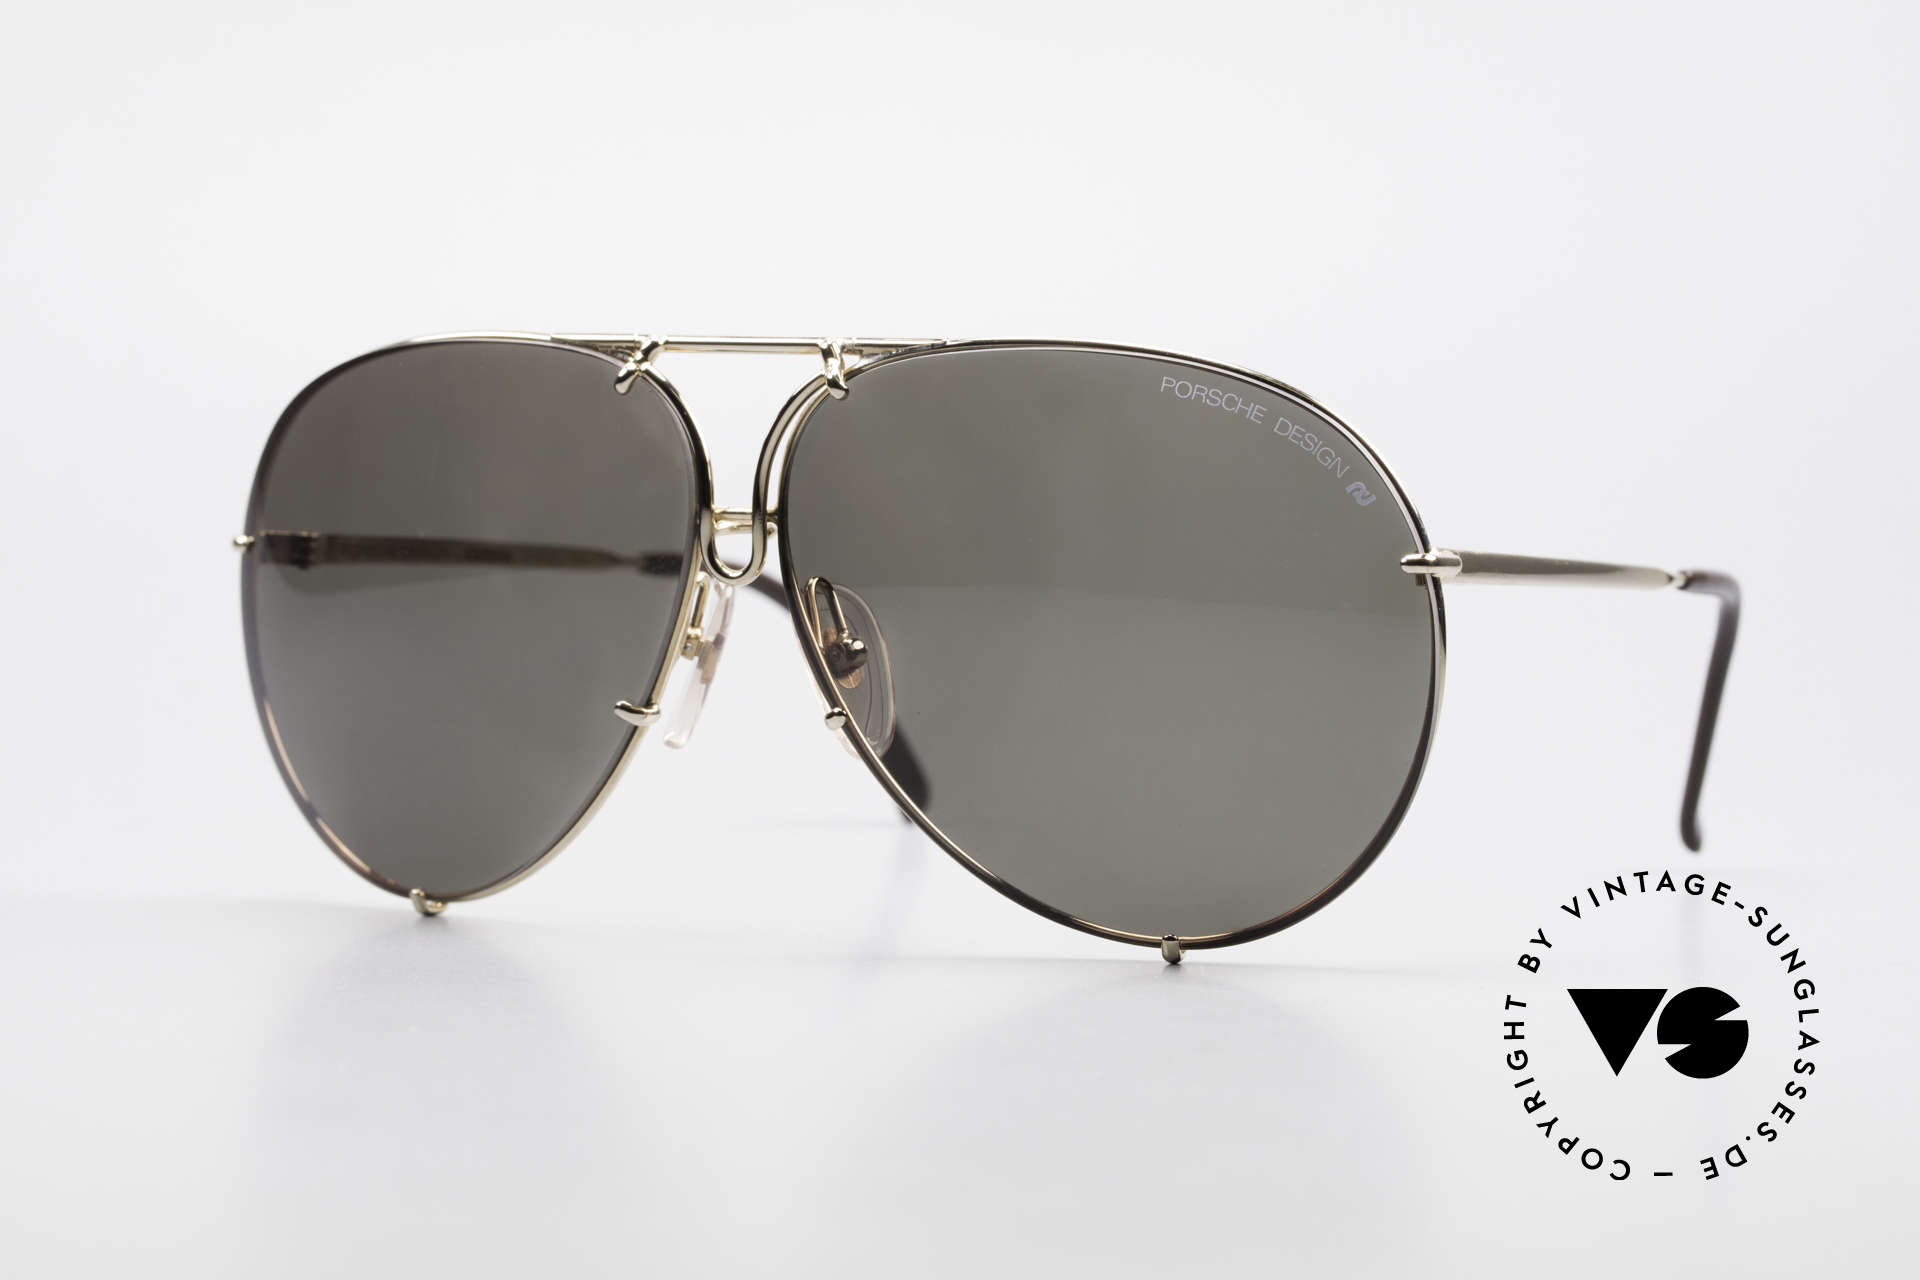 Porsche 5623 80's Interchangeable Lenses, NO RETRO SUNGLASSES, but a 30 years old original, Made for Men and Women